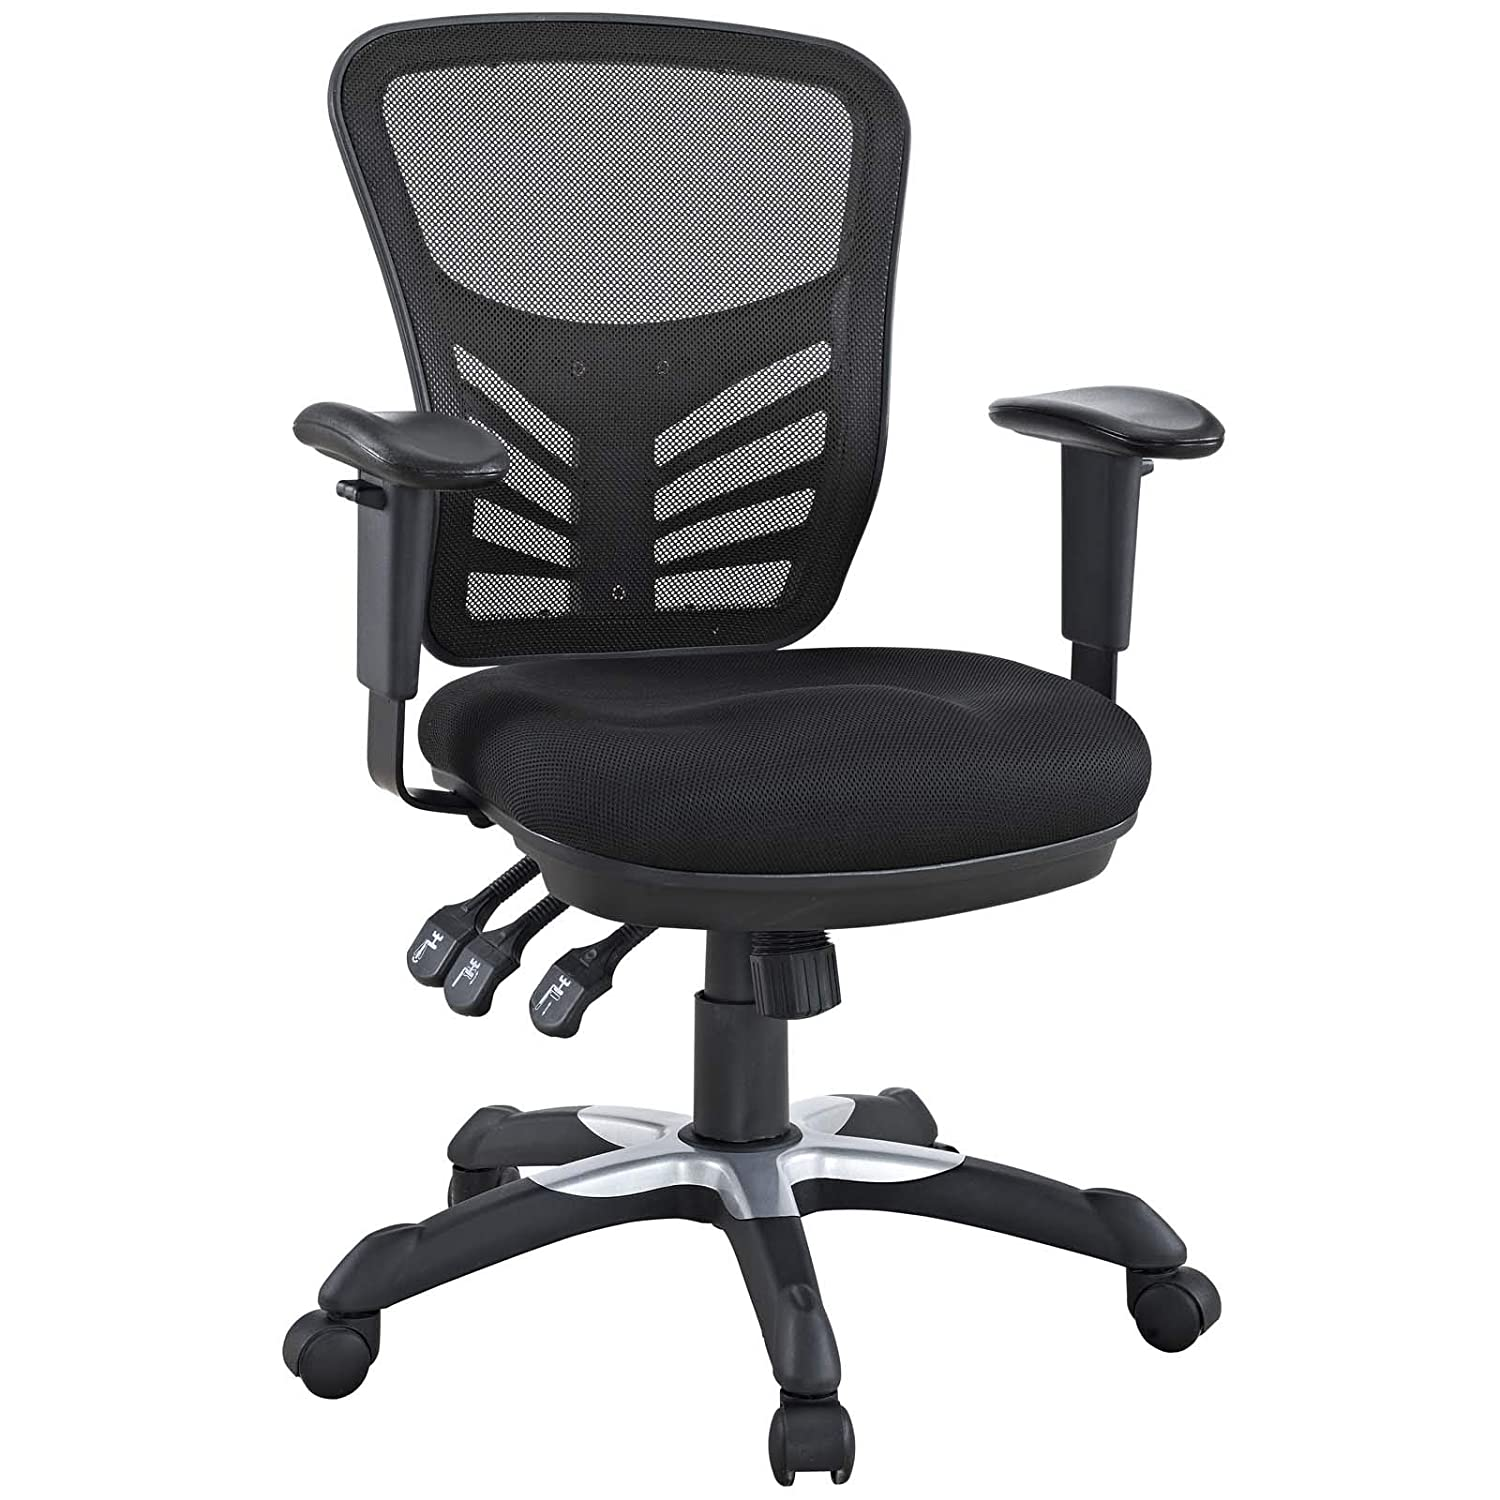 Modway Articulate Chair Black Friday Deal 2020